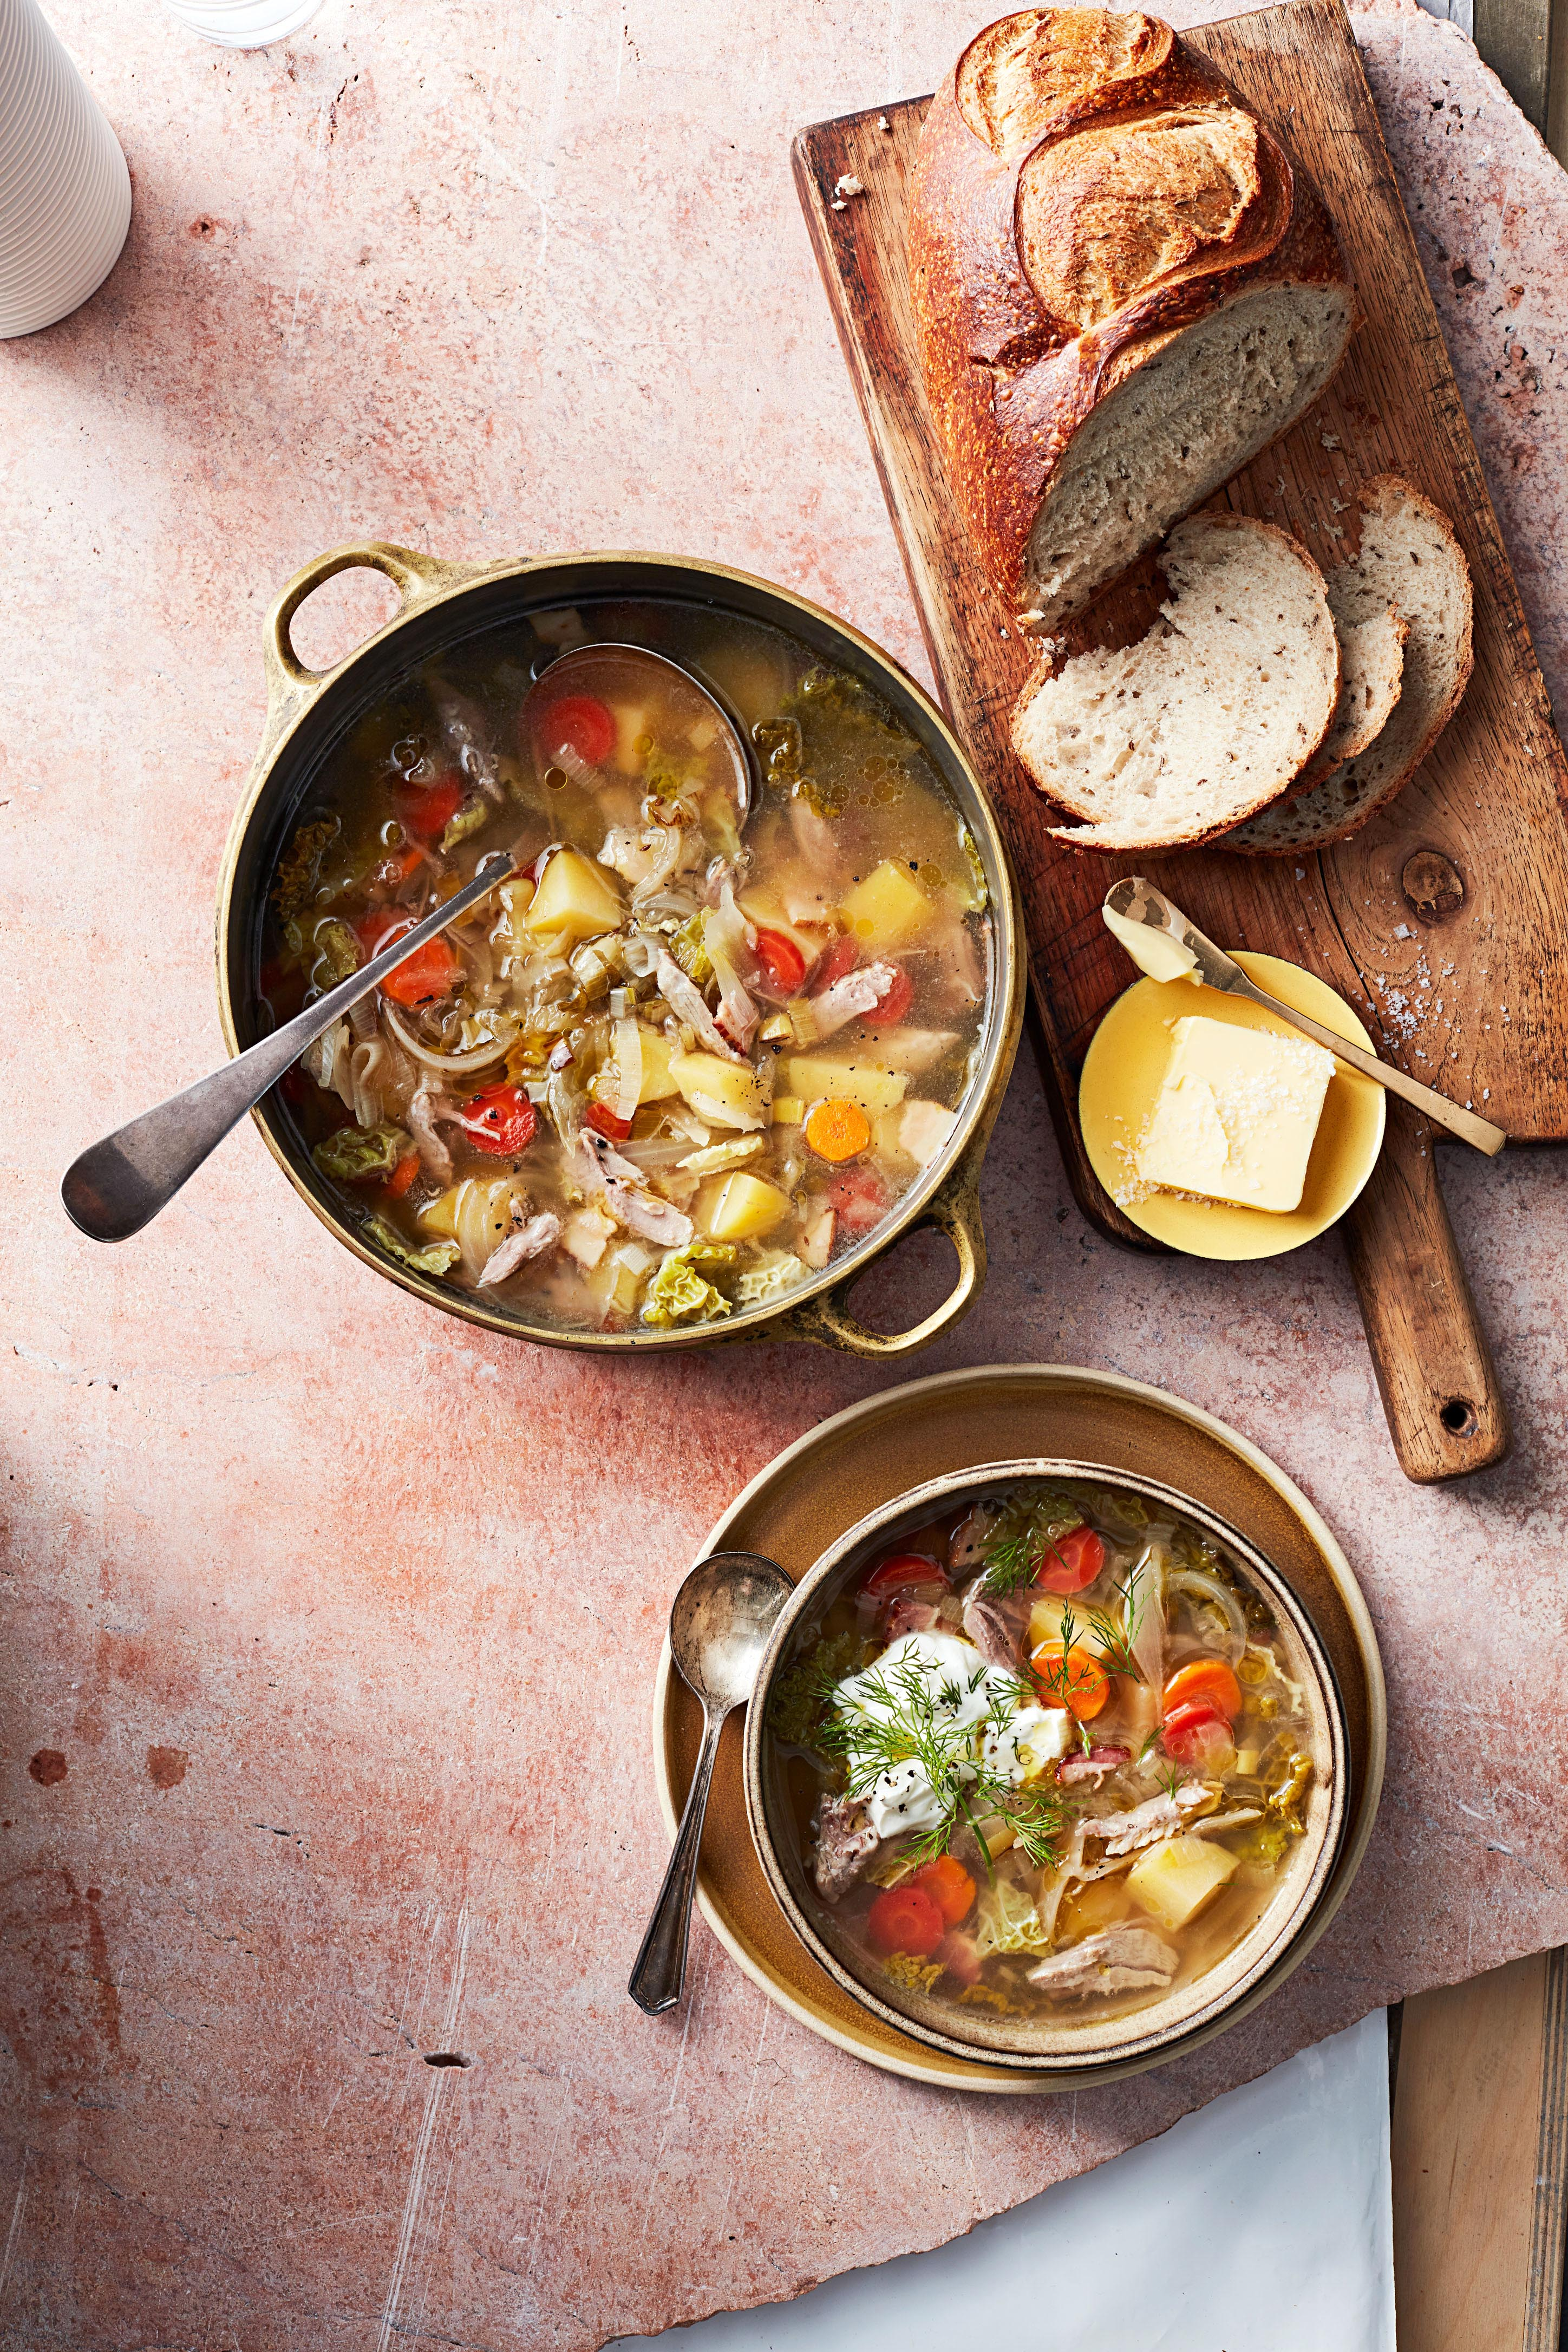 Pork-and-Cabbage Soup